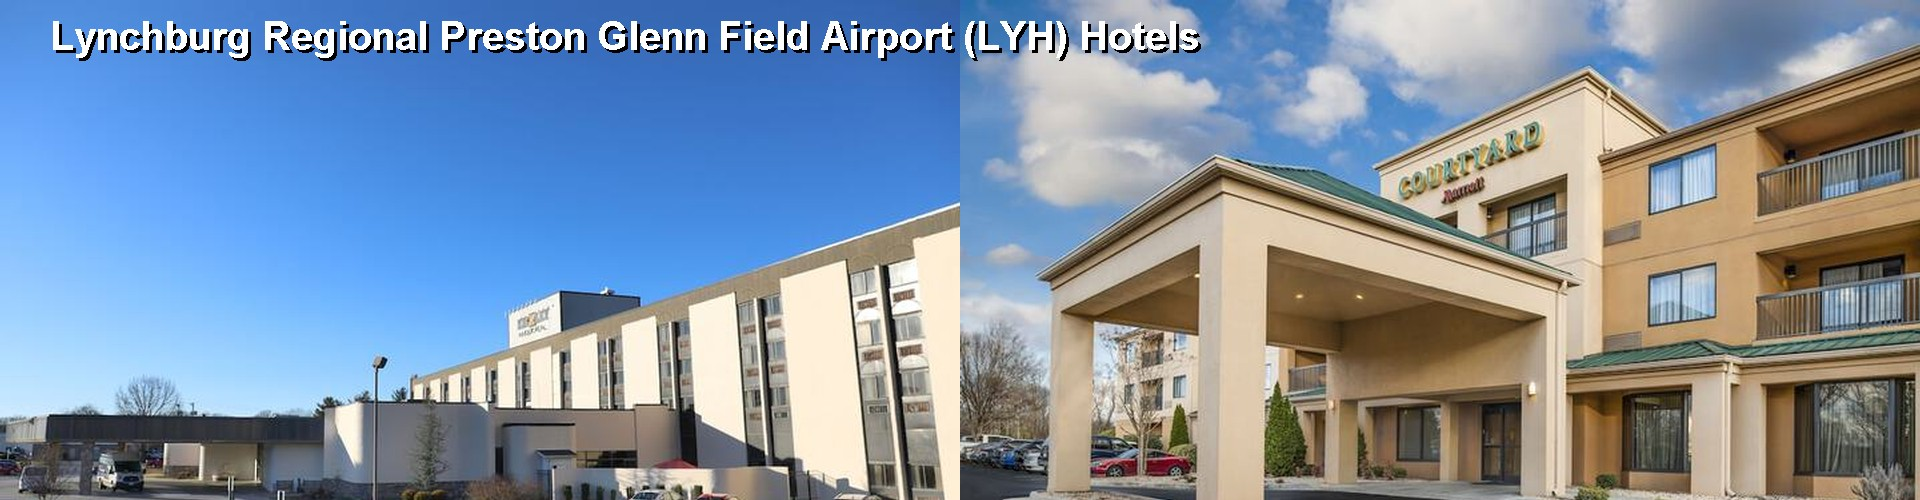 5 Best Hotels near Lynchburg Regional Preston Glenn Field Airport (LYH)